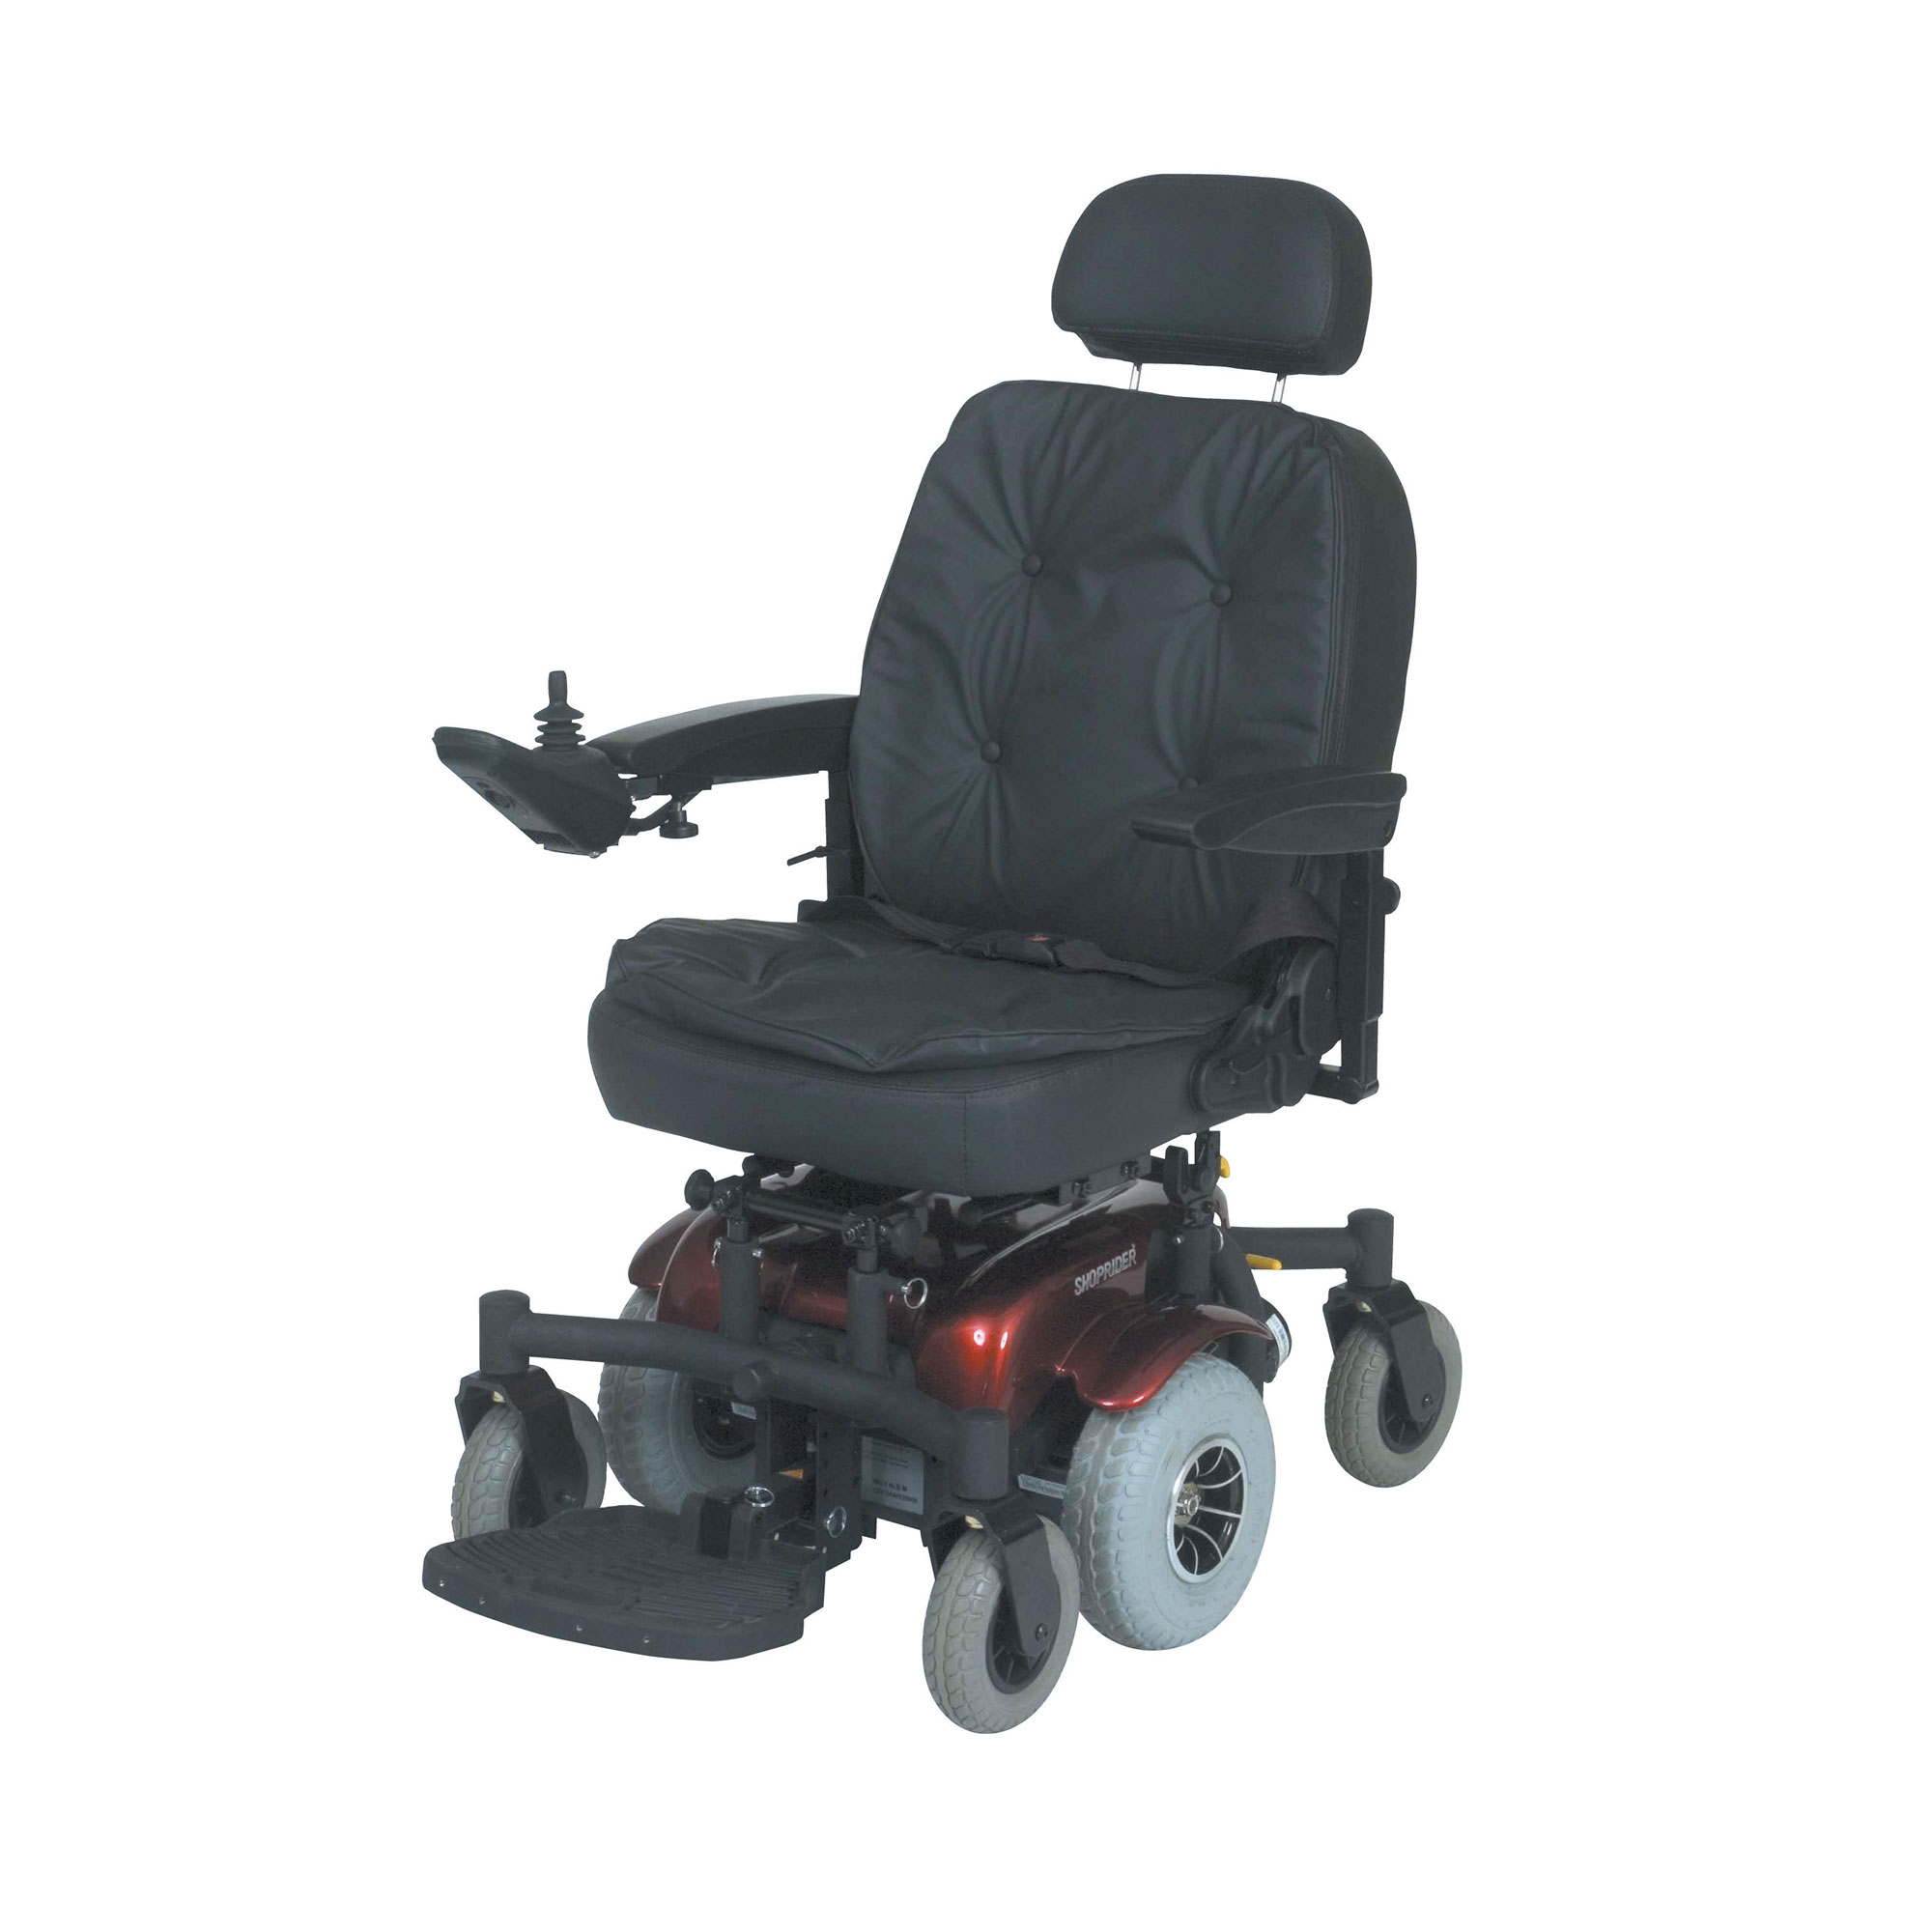 Electric Wheel Chairs Shoprider Malaga Power Chair Roma Medical